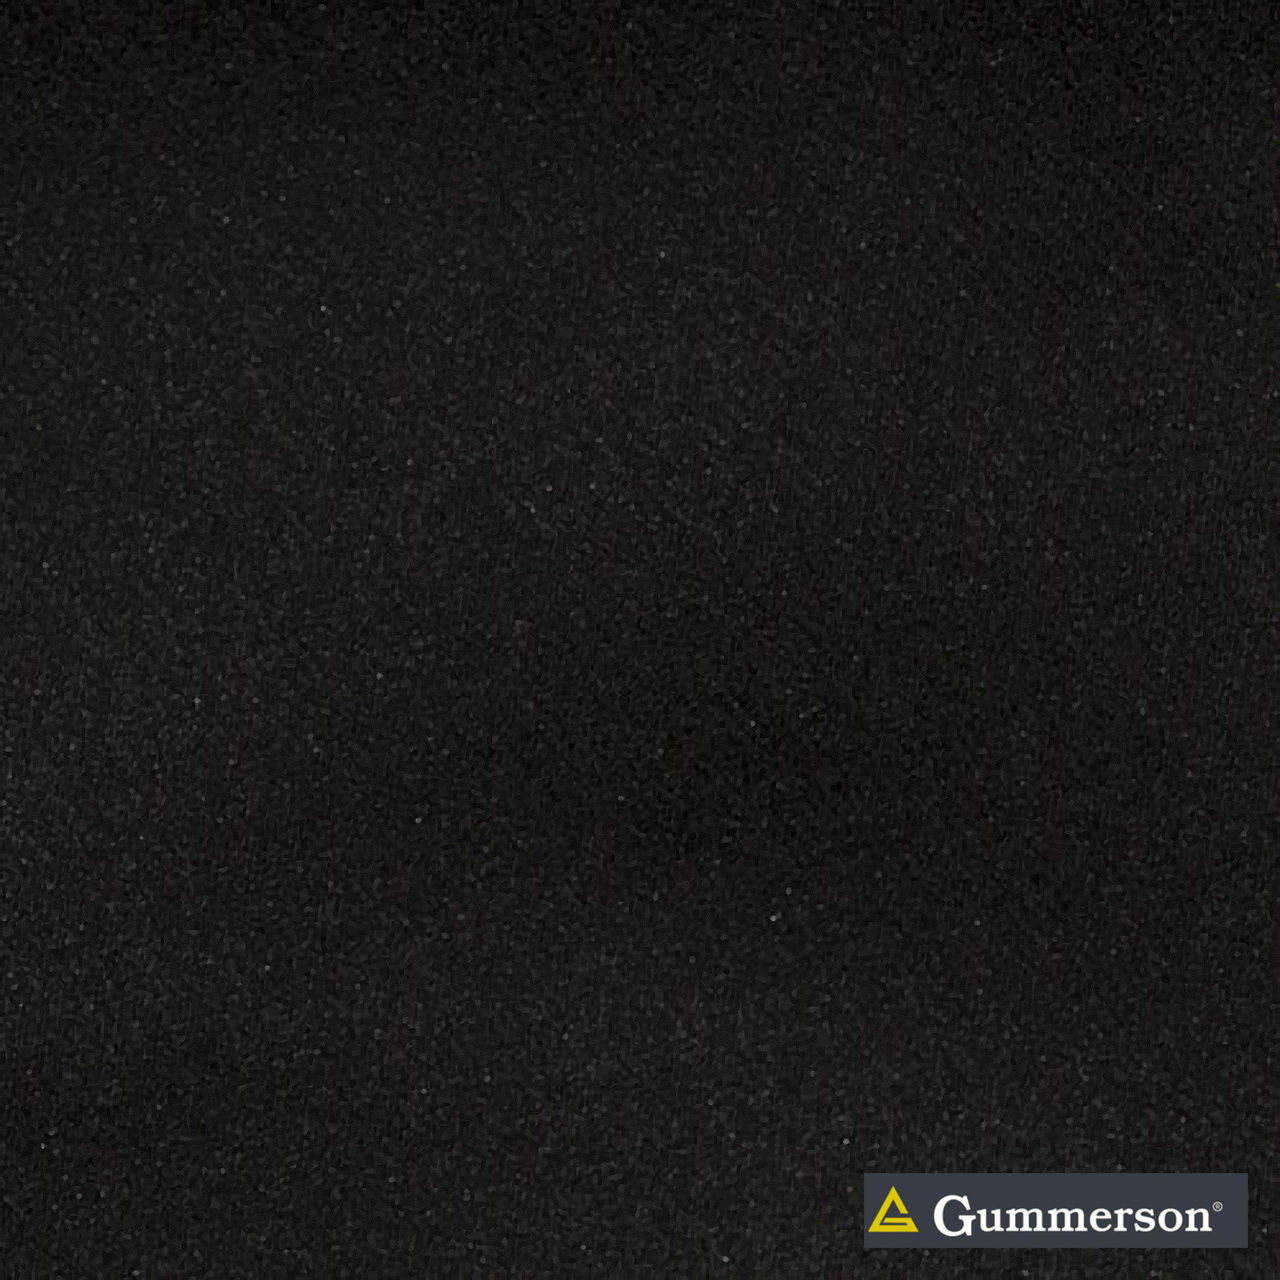 Gummerson - Continuous-Softweave Black Room-Darkening 290cm  | Curtain Fabric - Fire Retardant, Plain, Black - Charcoal, Synthetic, Washable, Weave, Domestic Use, Softweave